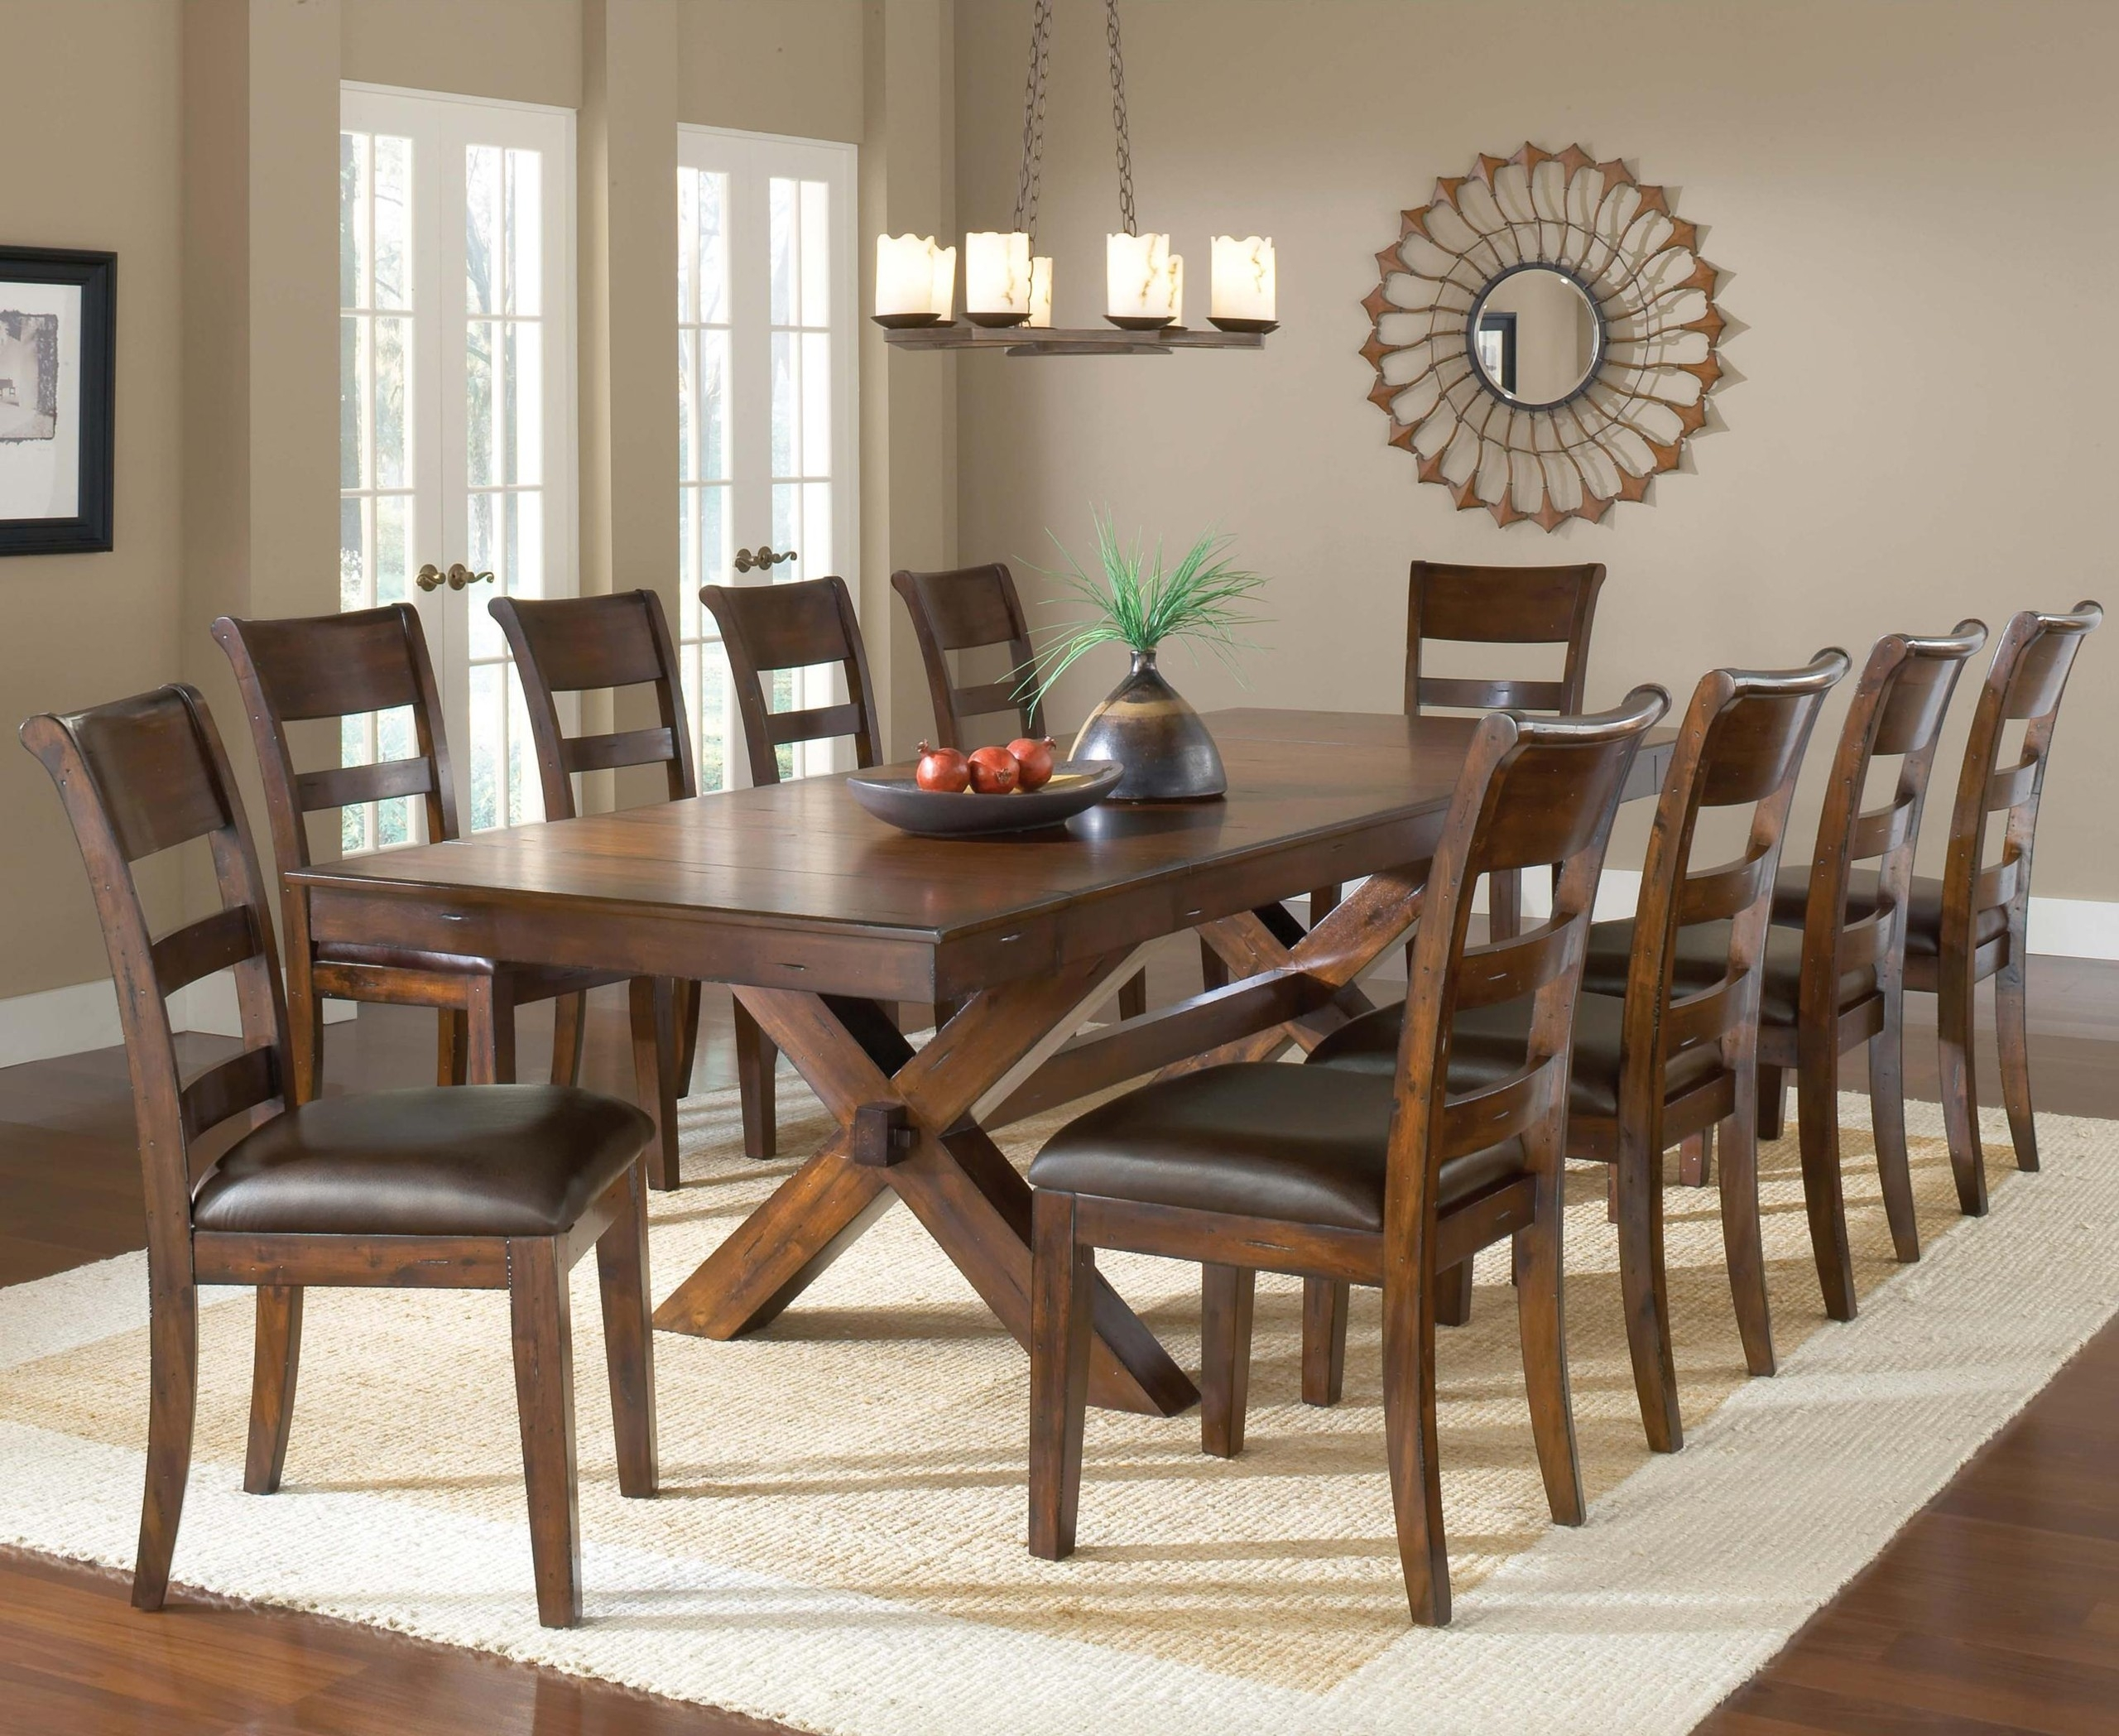 Best Oval Dining Tables For 10 Person Ideas On Foter